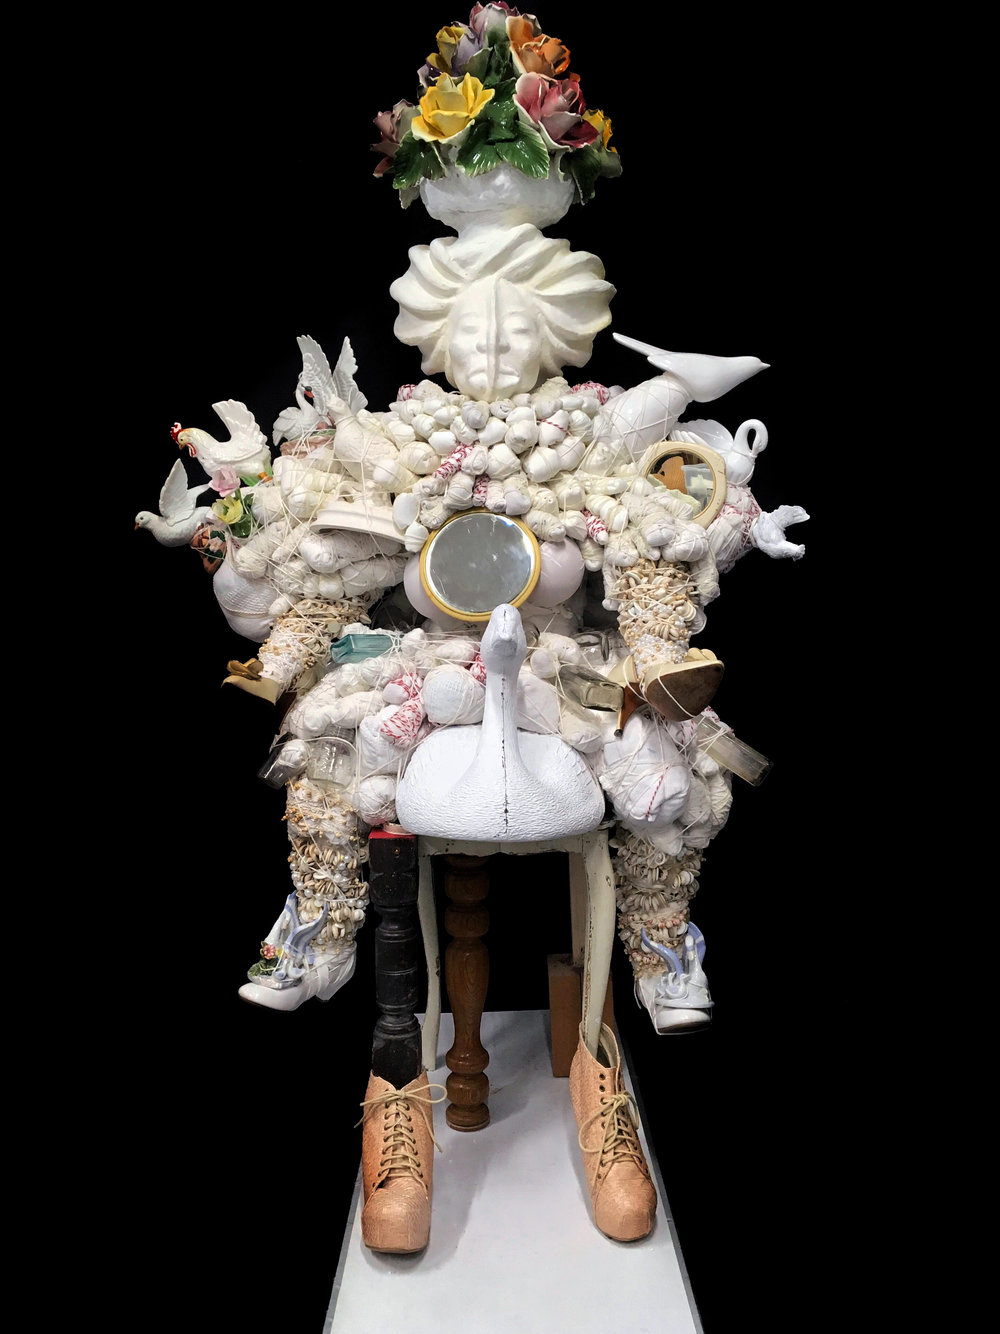 Vanessa German (American, b. 1976).  A Love Poem to Nia Wilson #2 , 2018. Mixed media assemblage, 66 x 36 x 40 in. Courtesy Carl Hammer Gallery, Chicago